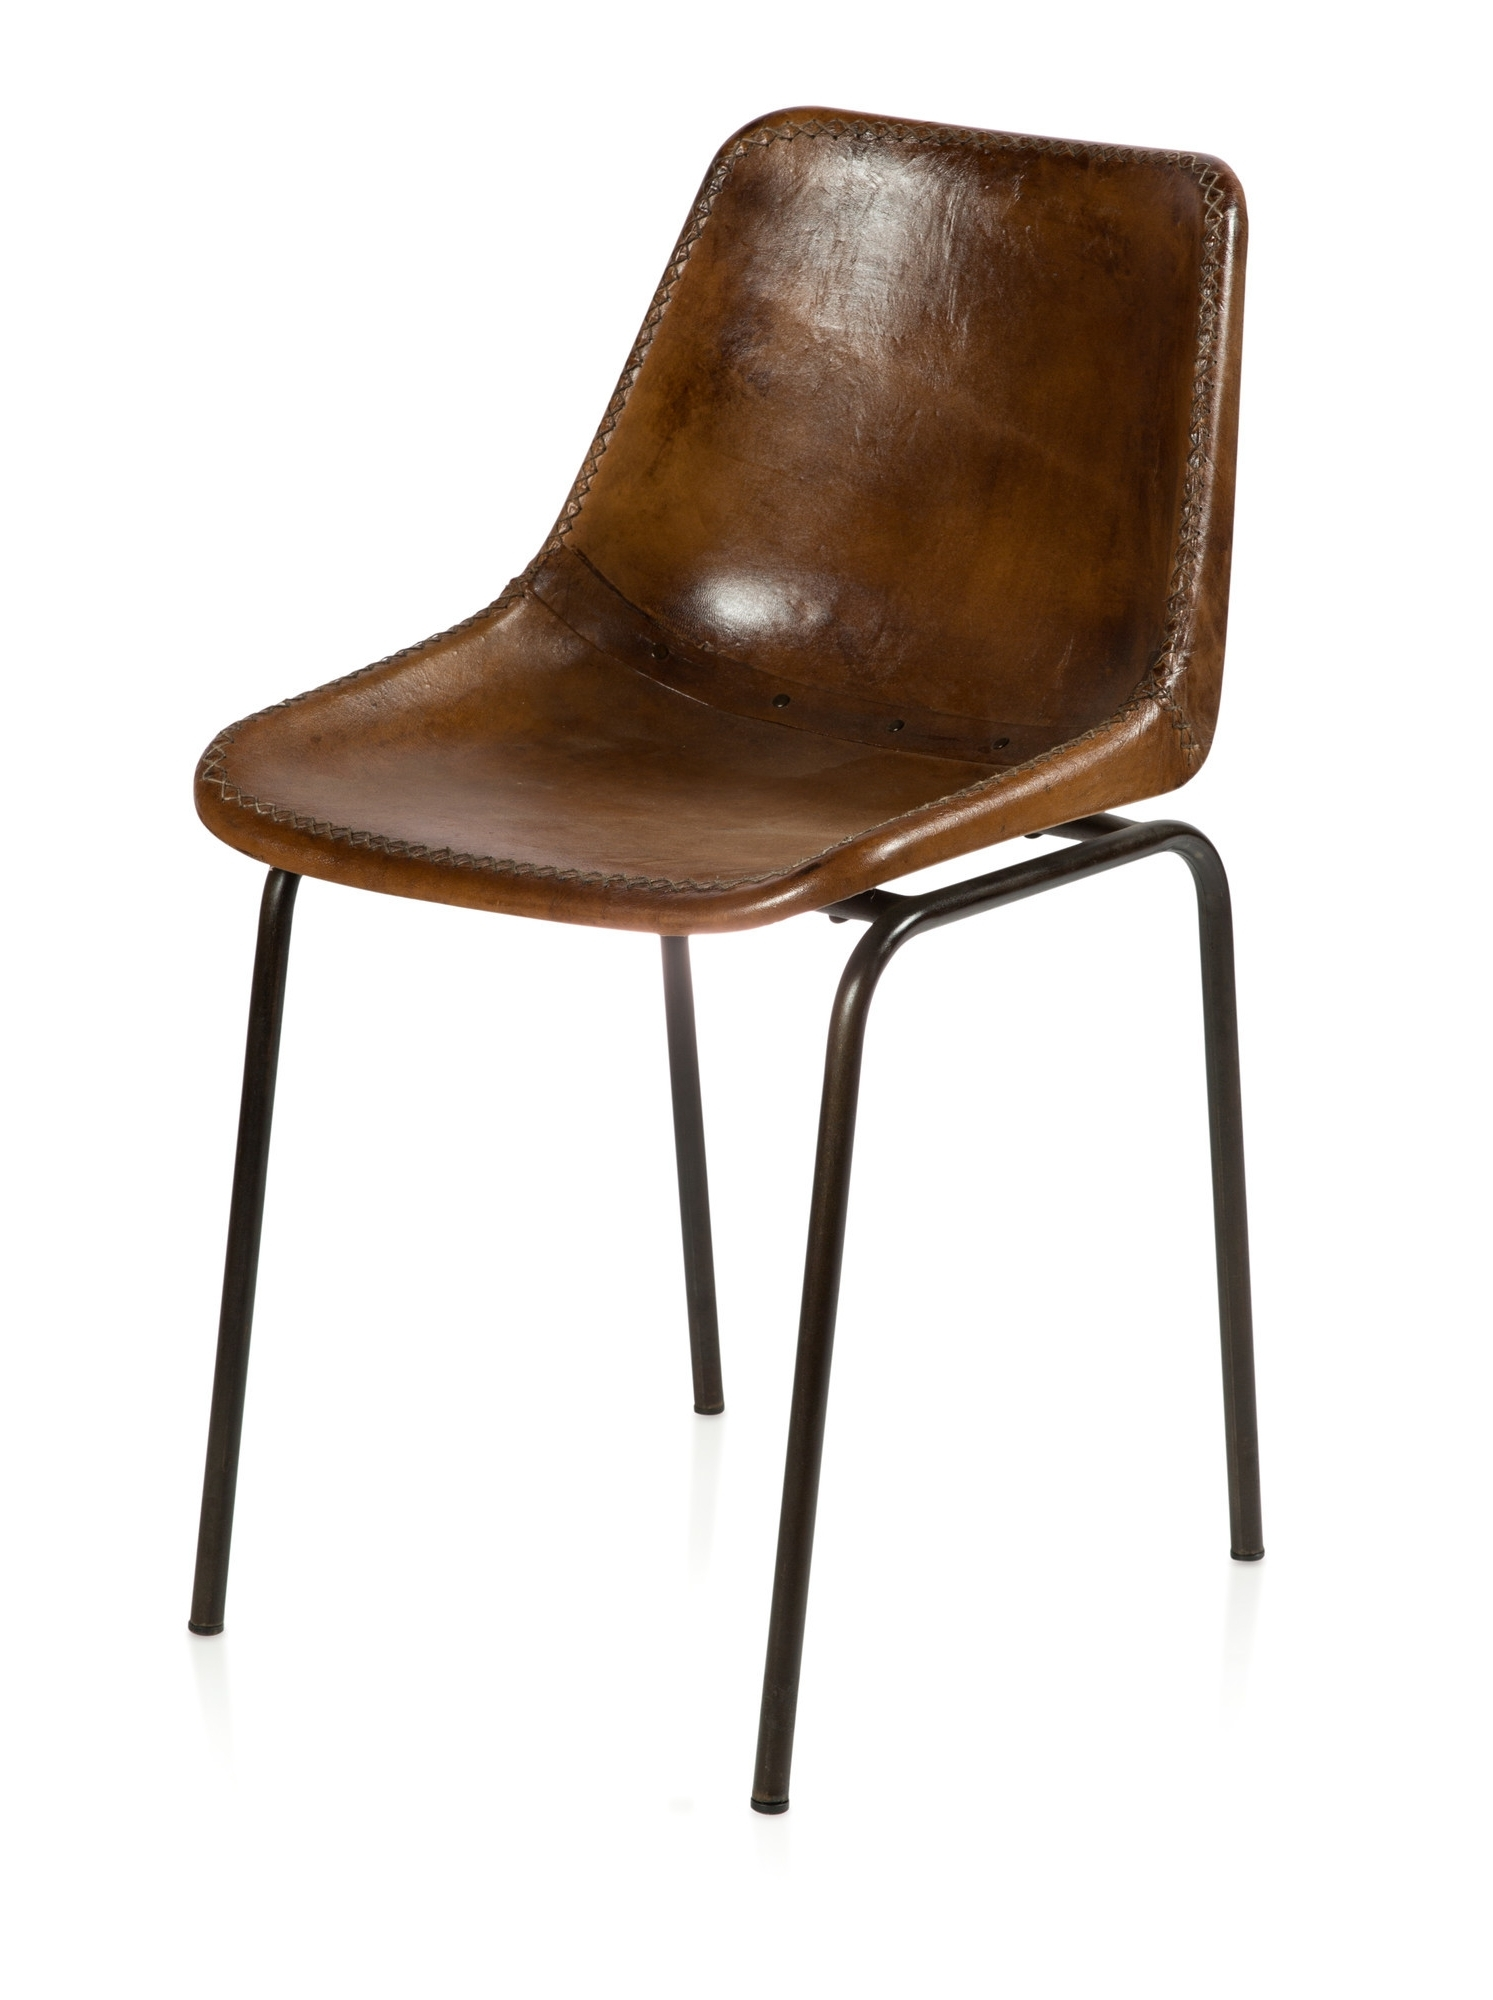 Best And Newest Brown Leather Dining Chairs Throughout Andiez Brown Leather Dining Chair (View 14 of 25)